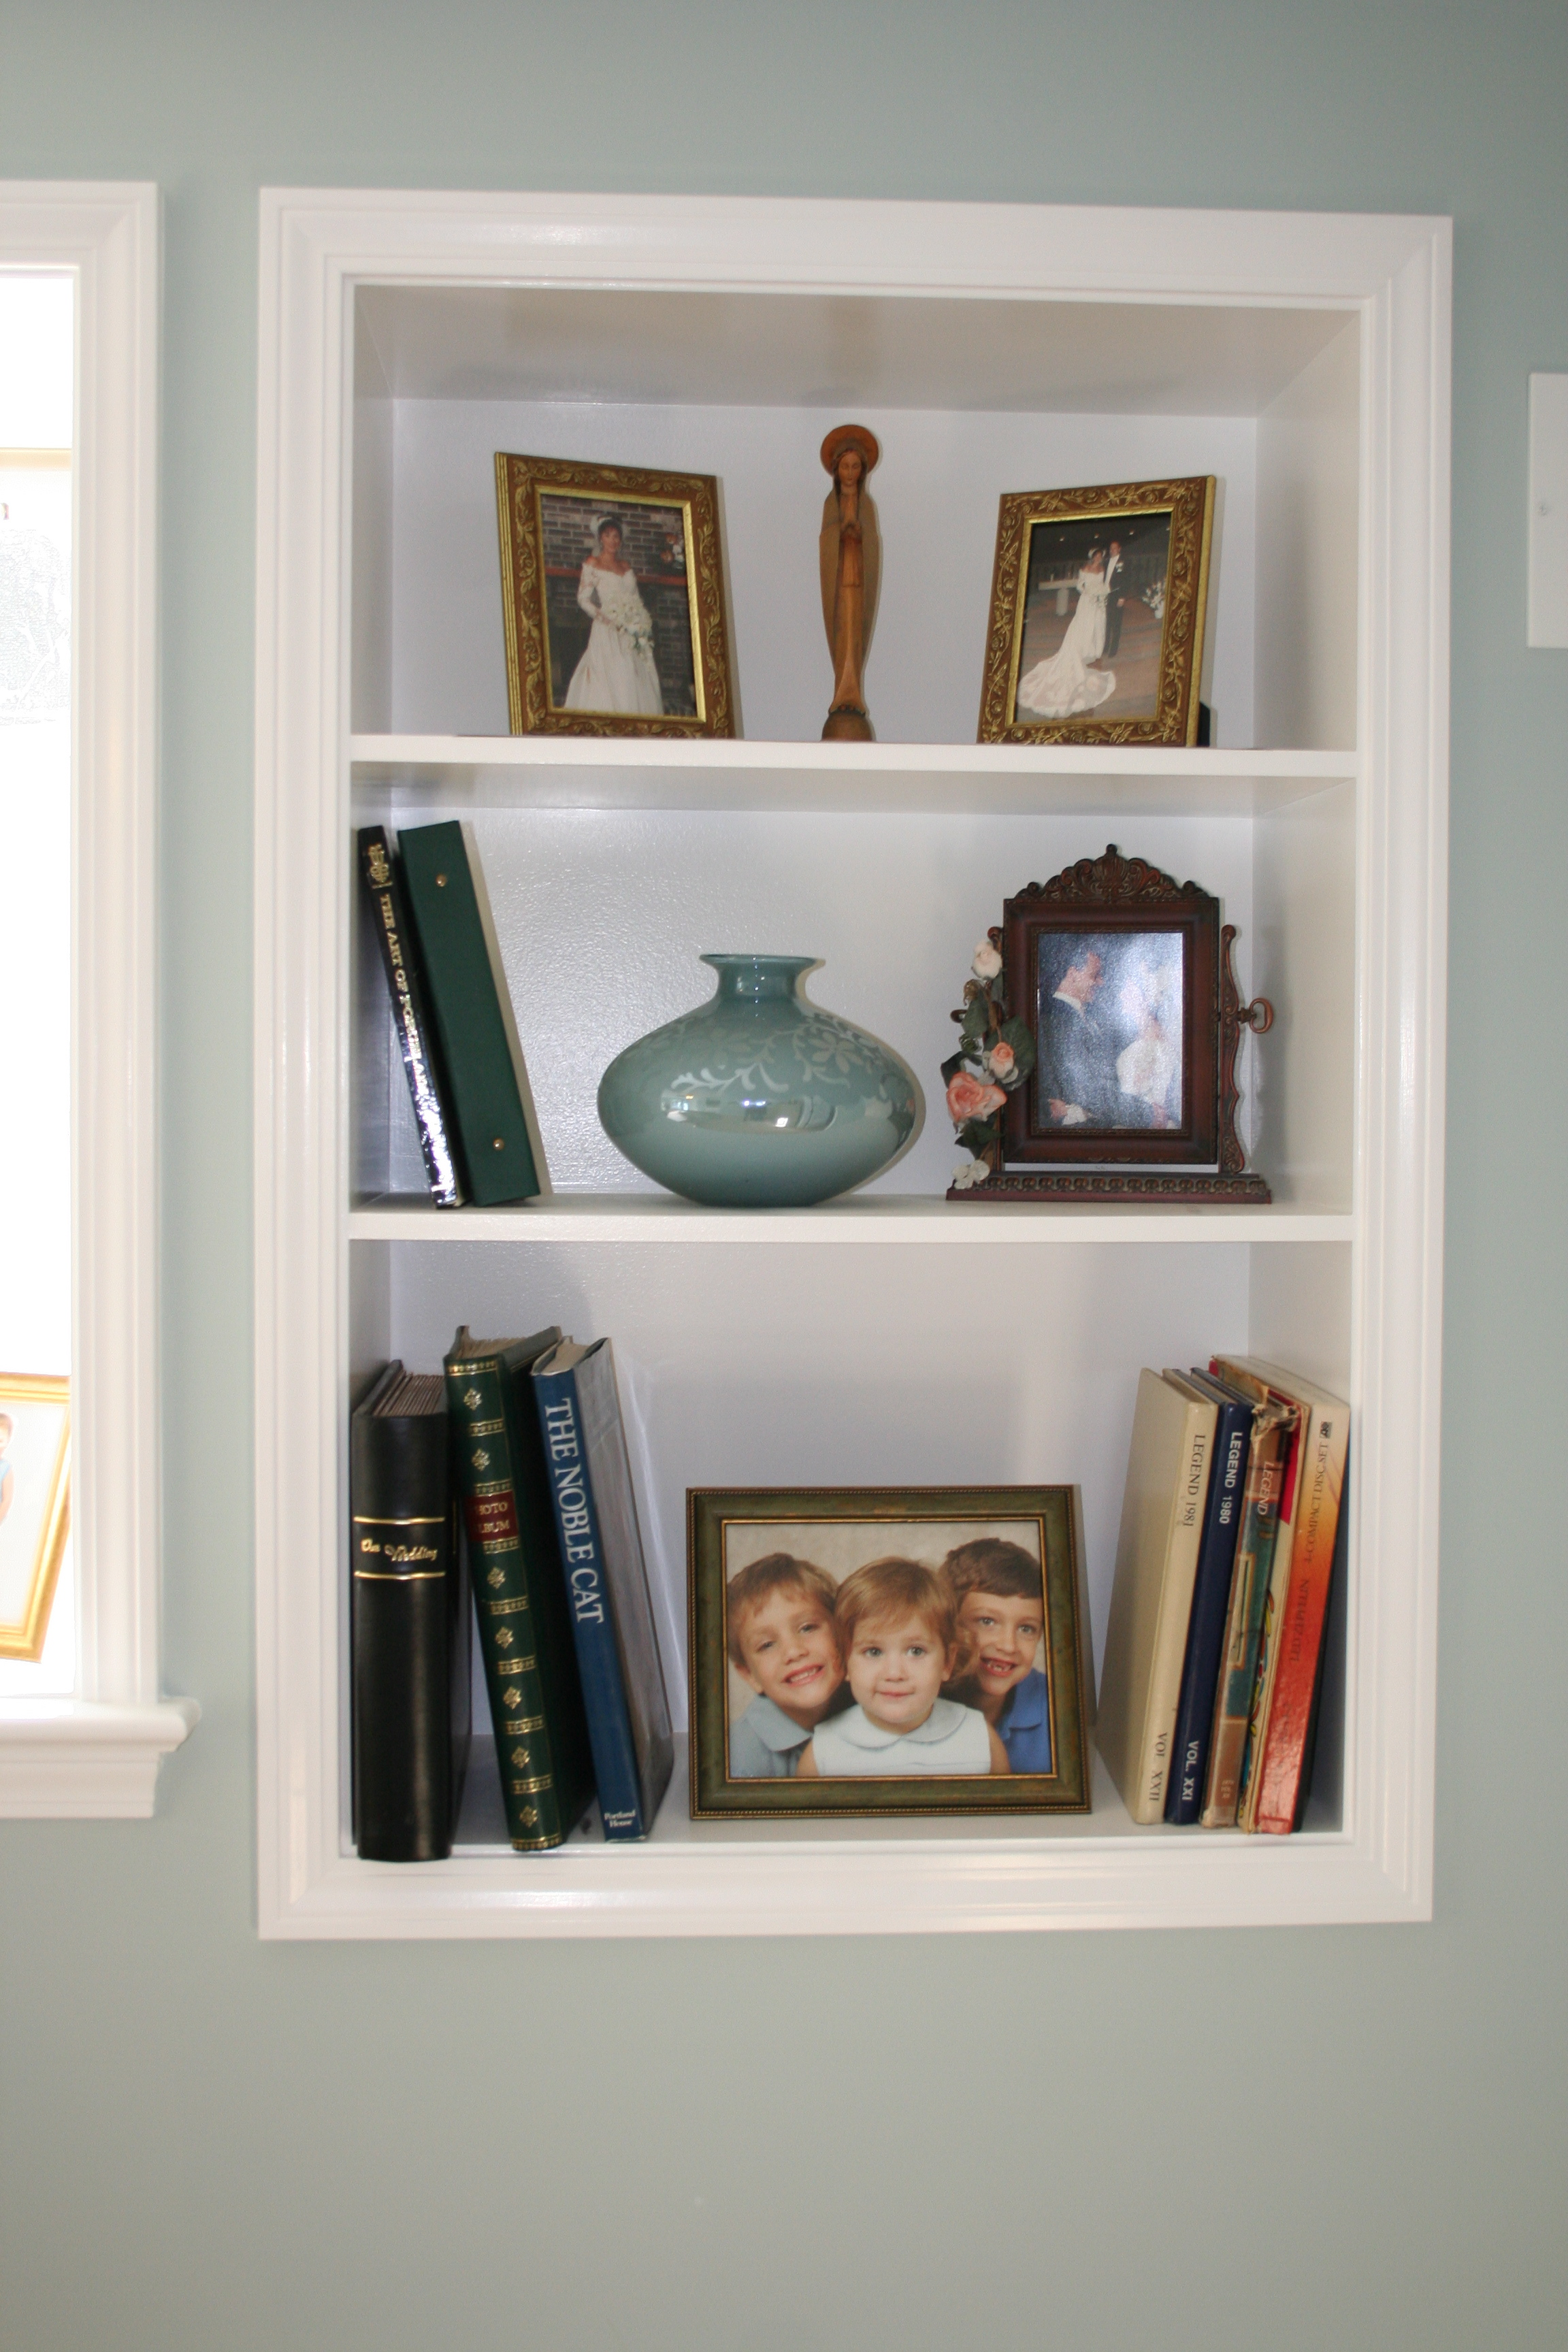 Do It Yourself Home Design: Wall Shelves For Books Design